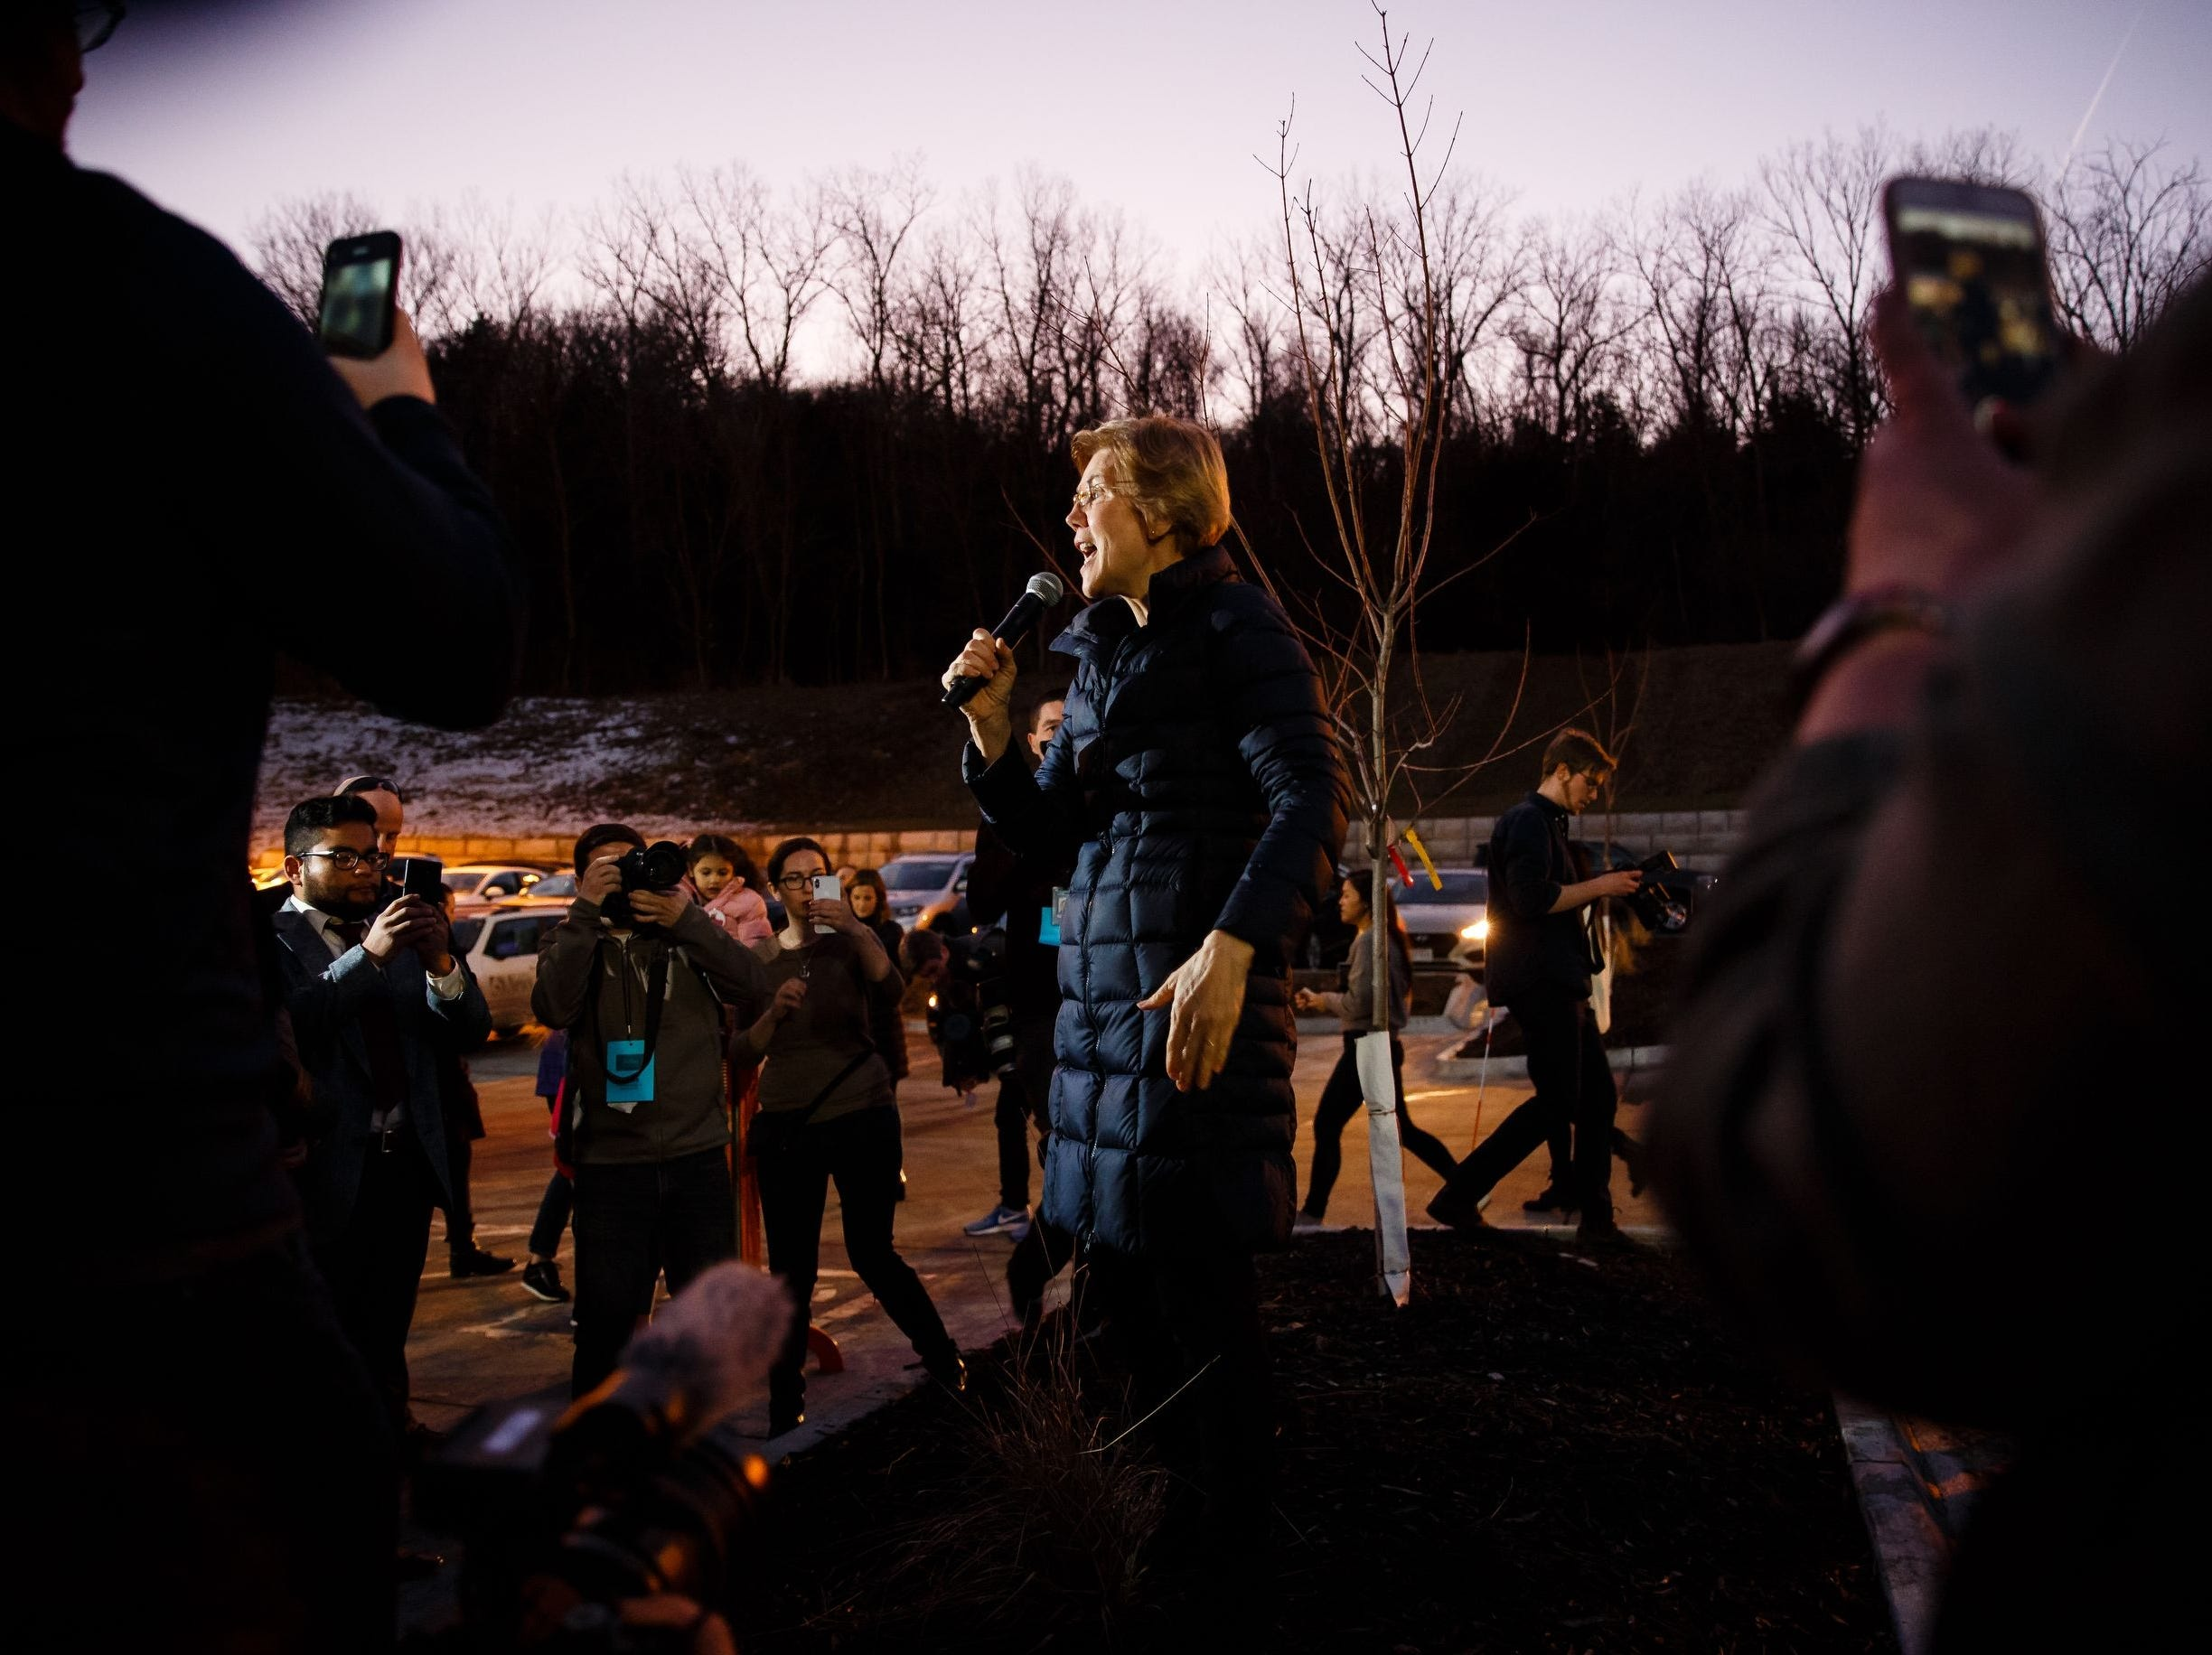 Sen. Elizabeth Warren (D-MA) speaks to the overflow crowd during an event on her first trip through Iowa as a possible 2020 presidential candidate on Friday, Jan. 4, 2019, in Council Bluffs.